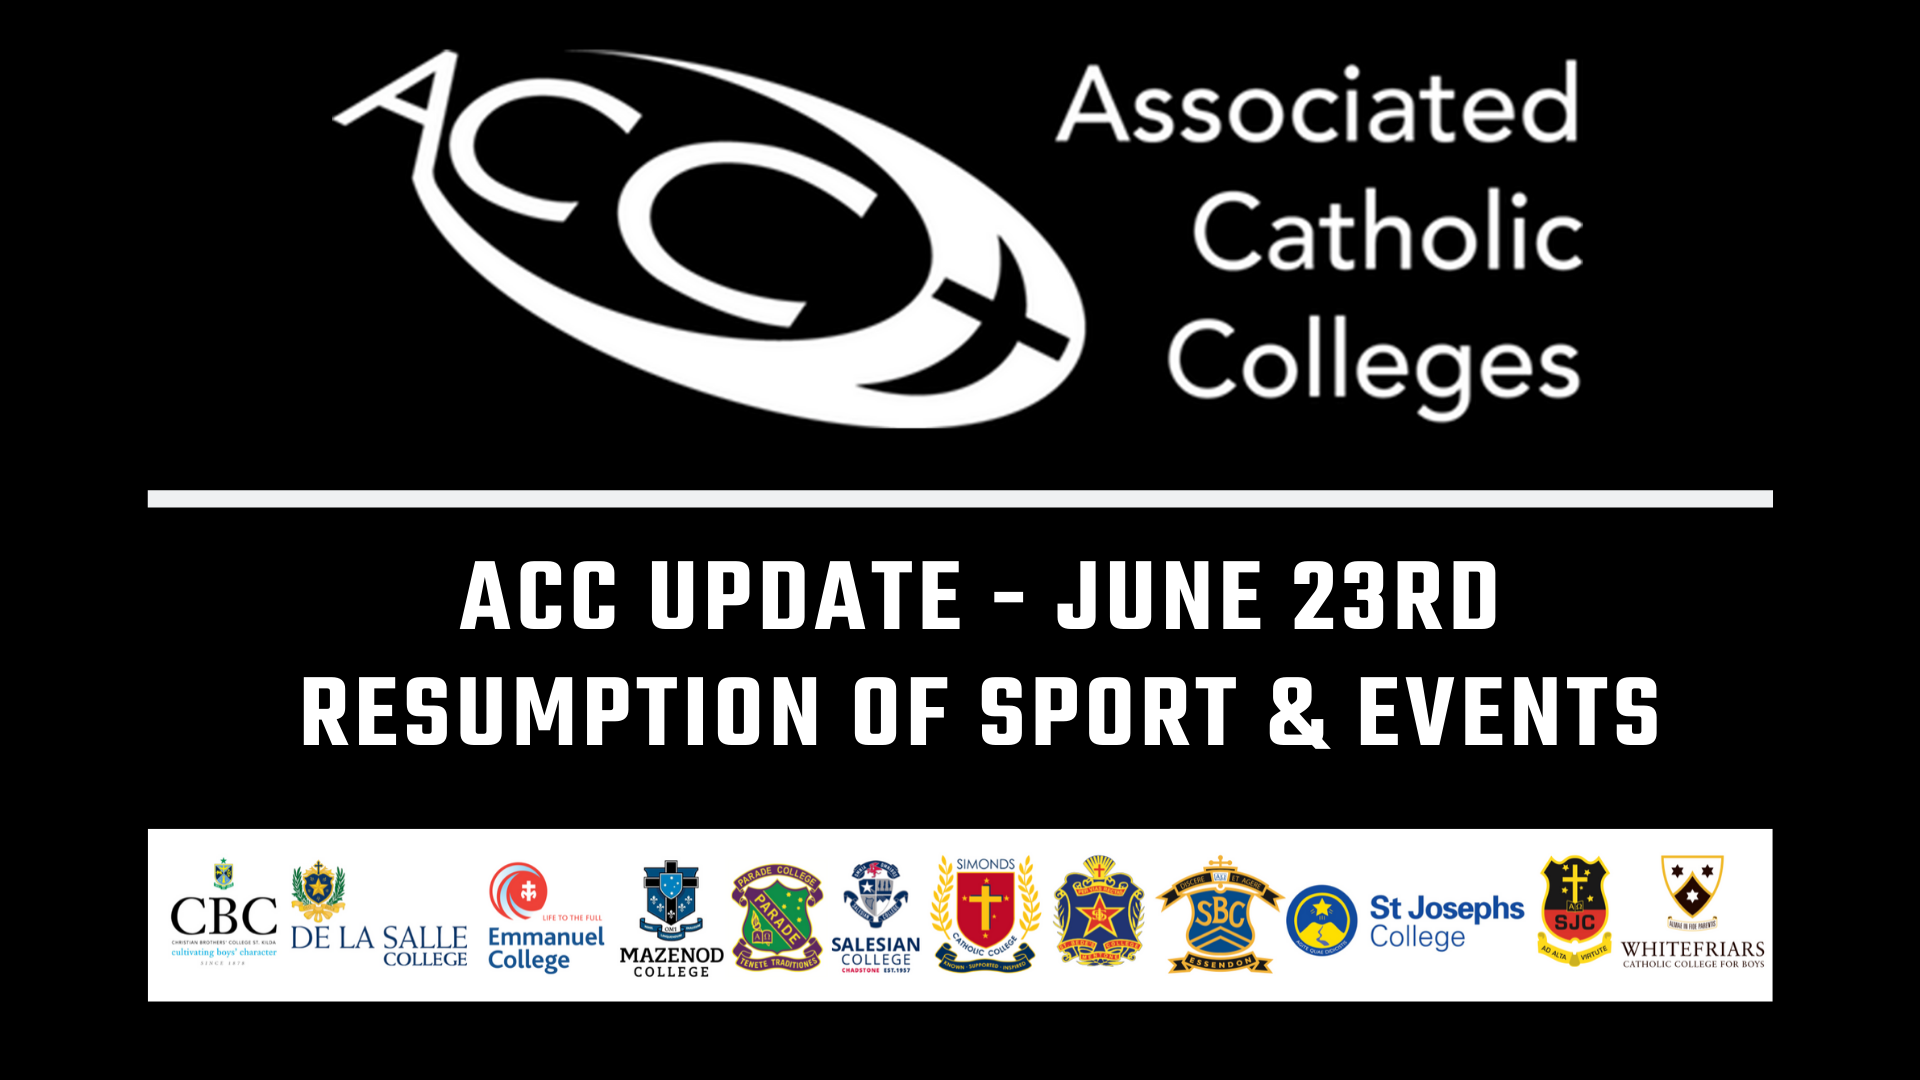 ACC UPDATE JUNE 23RD - RESUMPTION OF SPORT & EVENTS